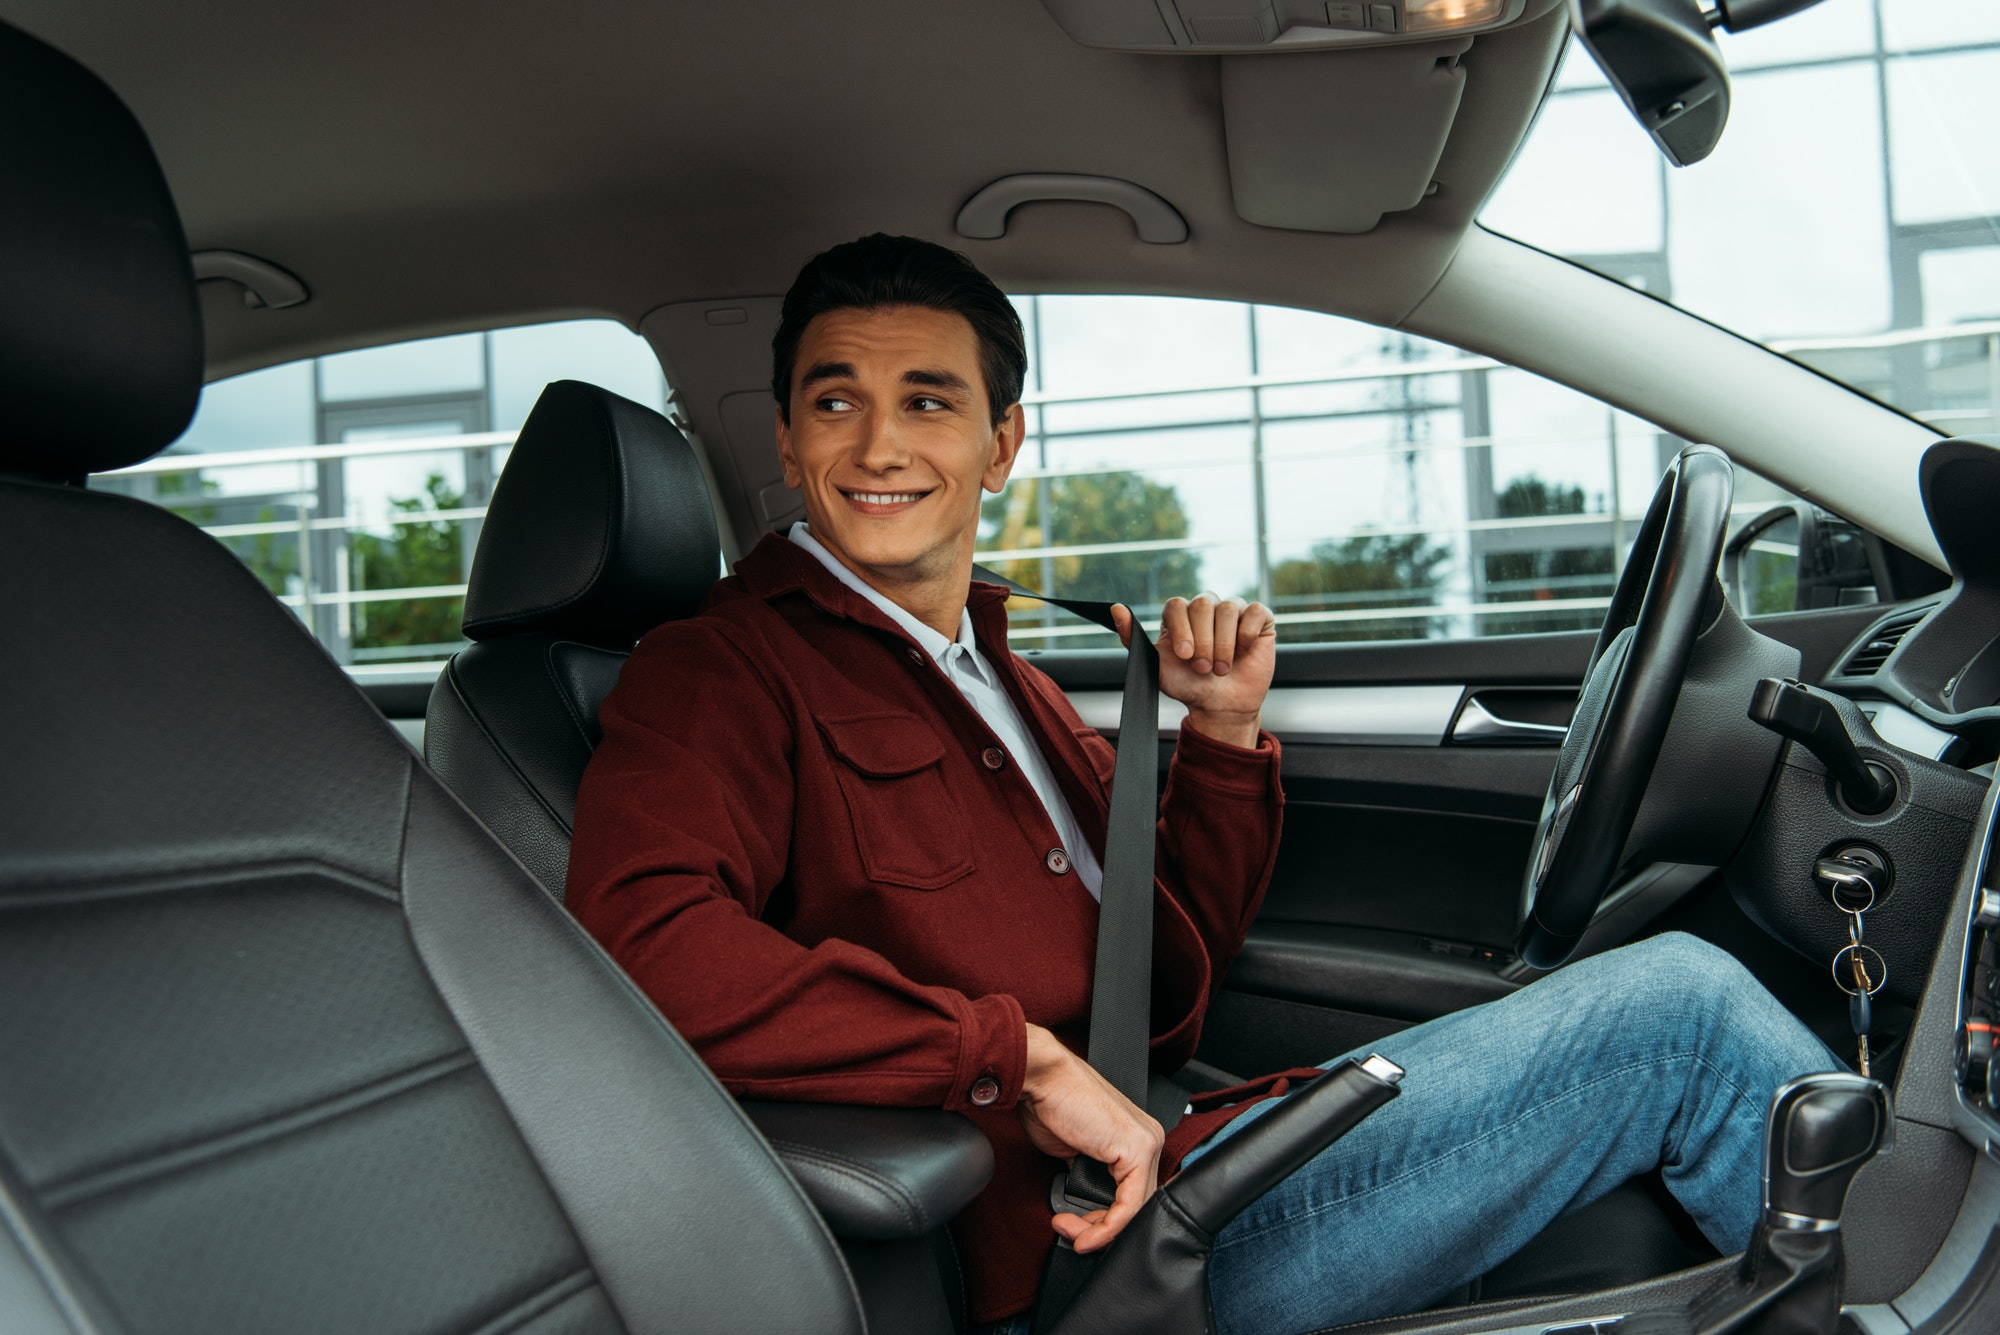 Smiling man holding safety belt in car and looking away